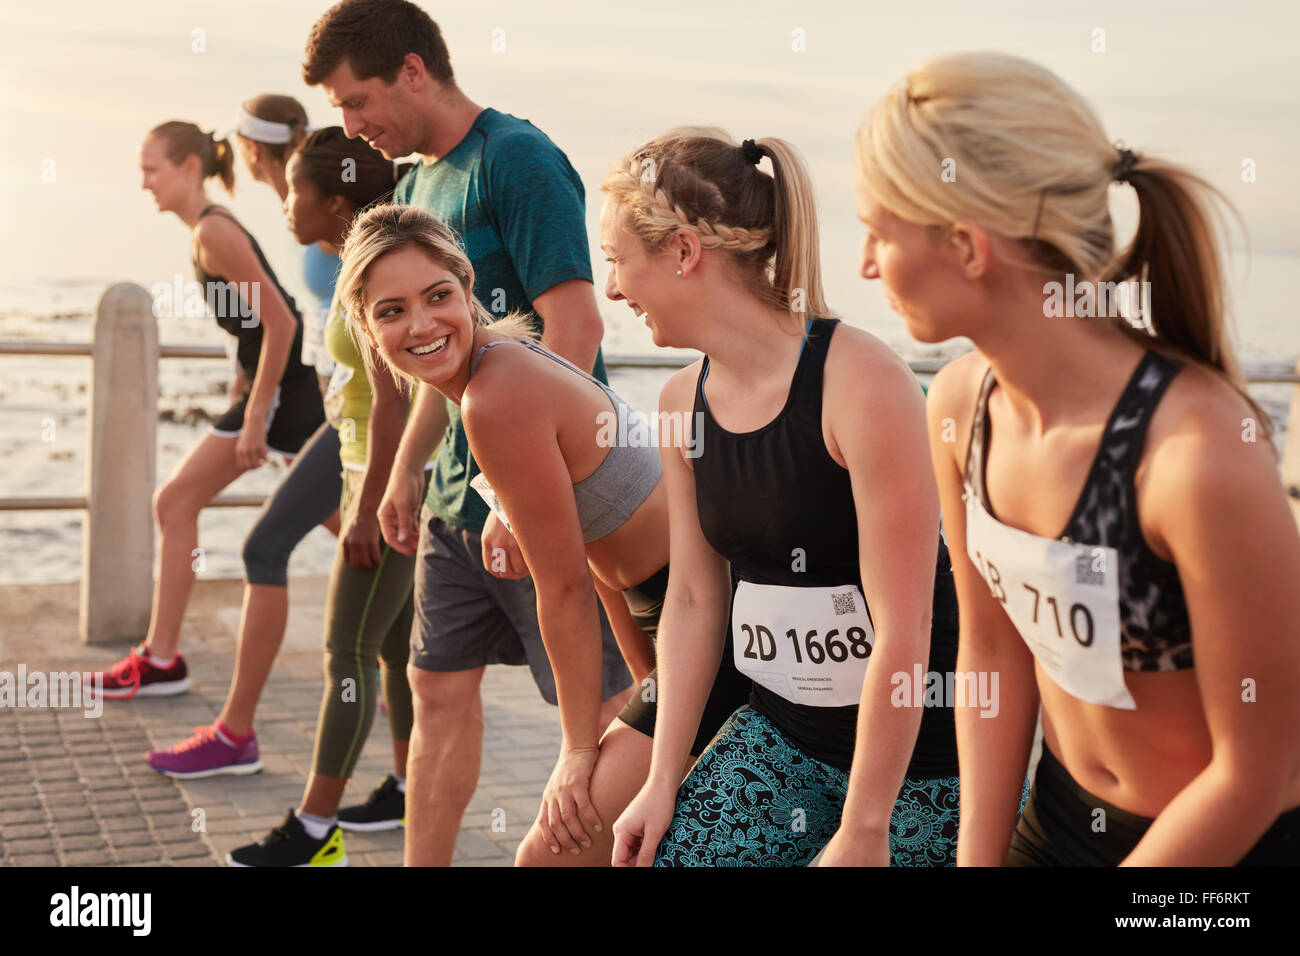 Happy young woman standing at starting line along with competitors. Racers standing at starting line of a marathon - Stock Image